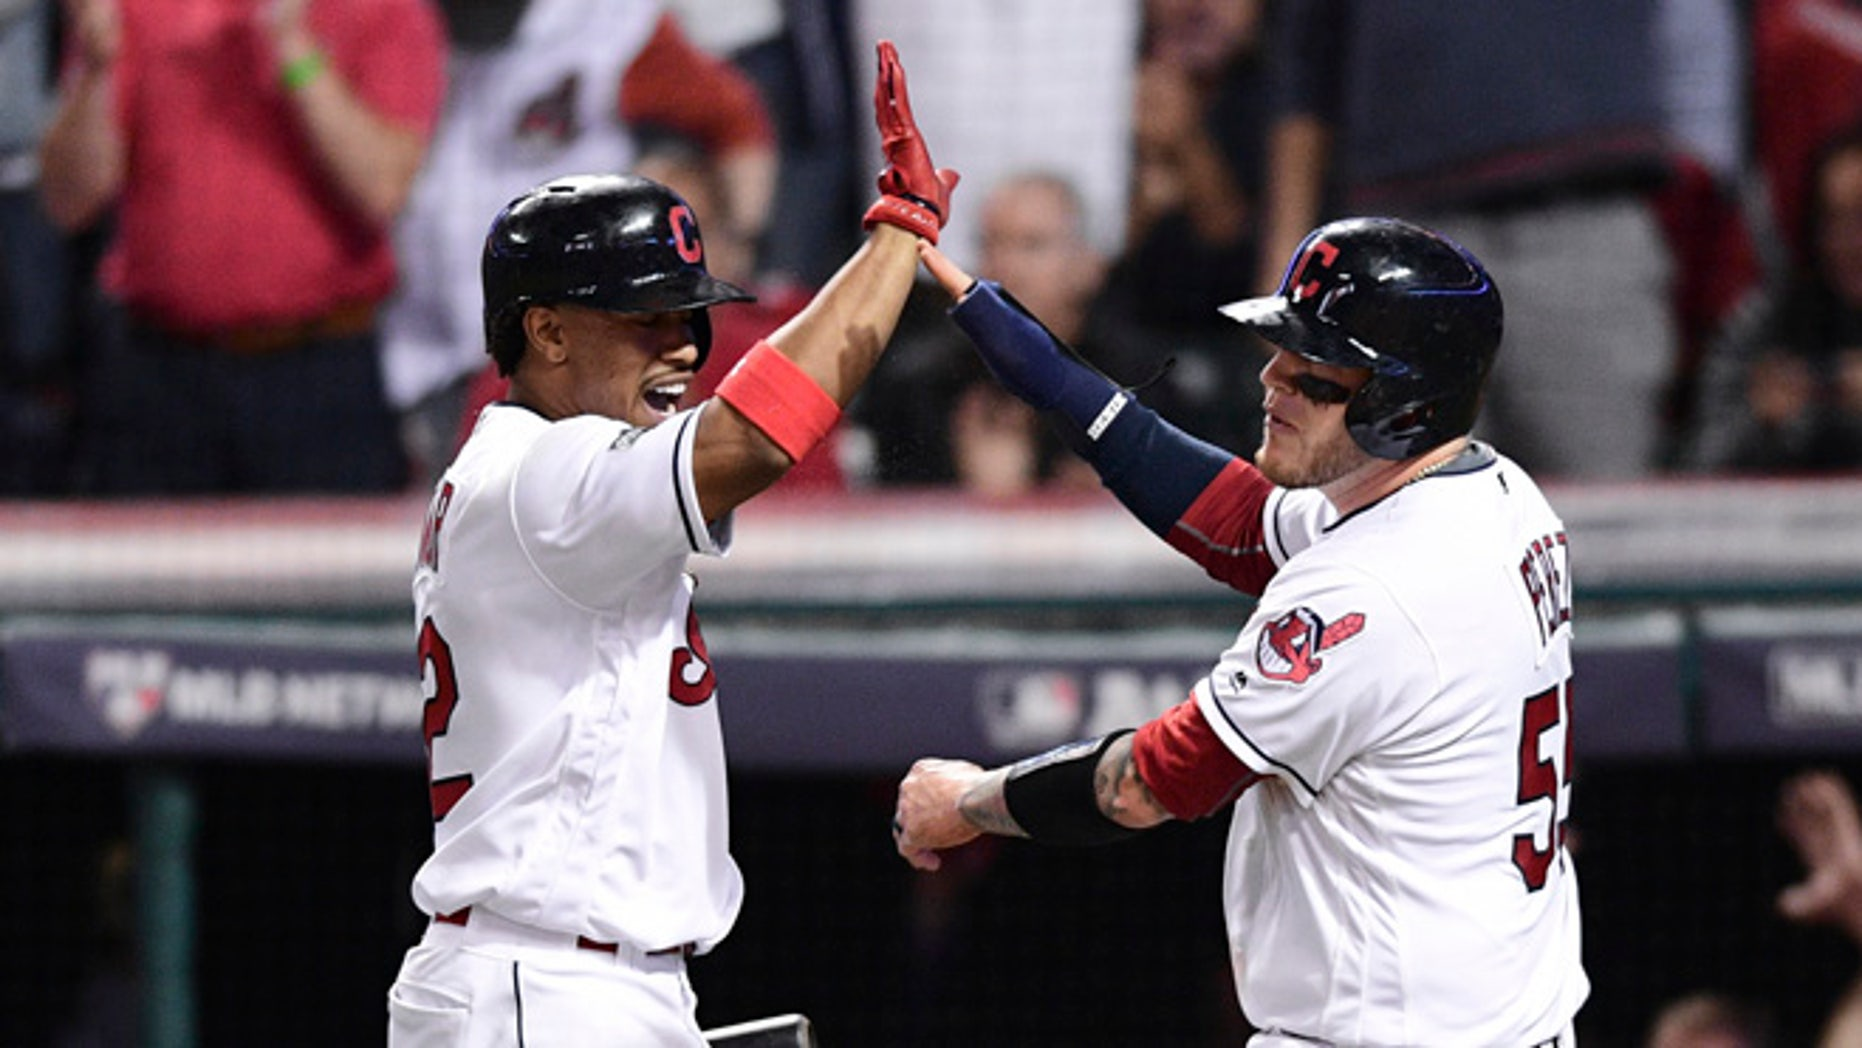 Cleveland Indians' Roberto Perez, right, celebrates with Francisco Lindor after scoring on a Jason Kipnis single against the Boston Red Sox in the fifth inning during Game 1 of baseball's American League Division Series, Thursday, Oct. 6, 2016, in Cleveland.